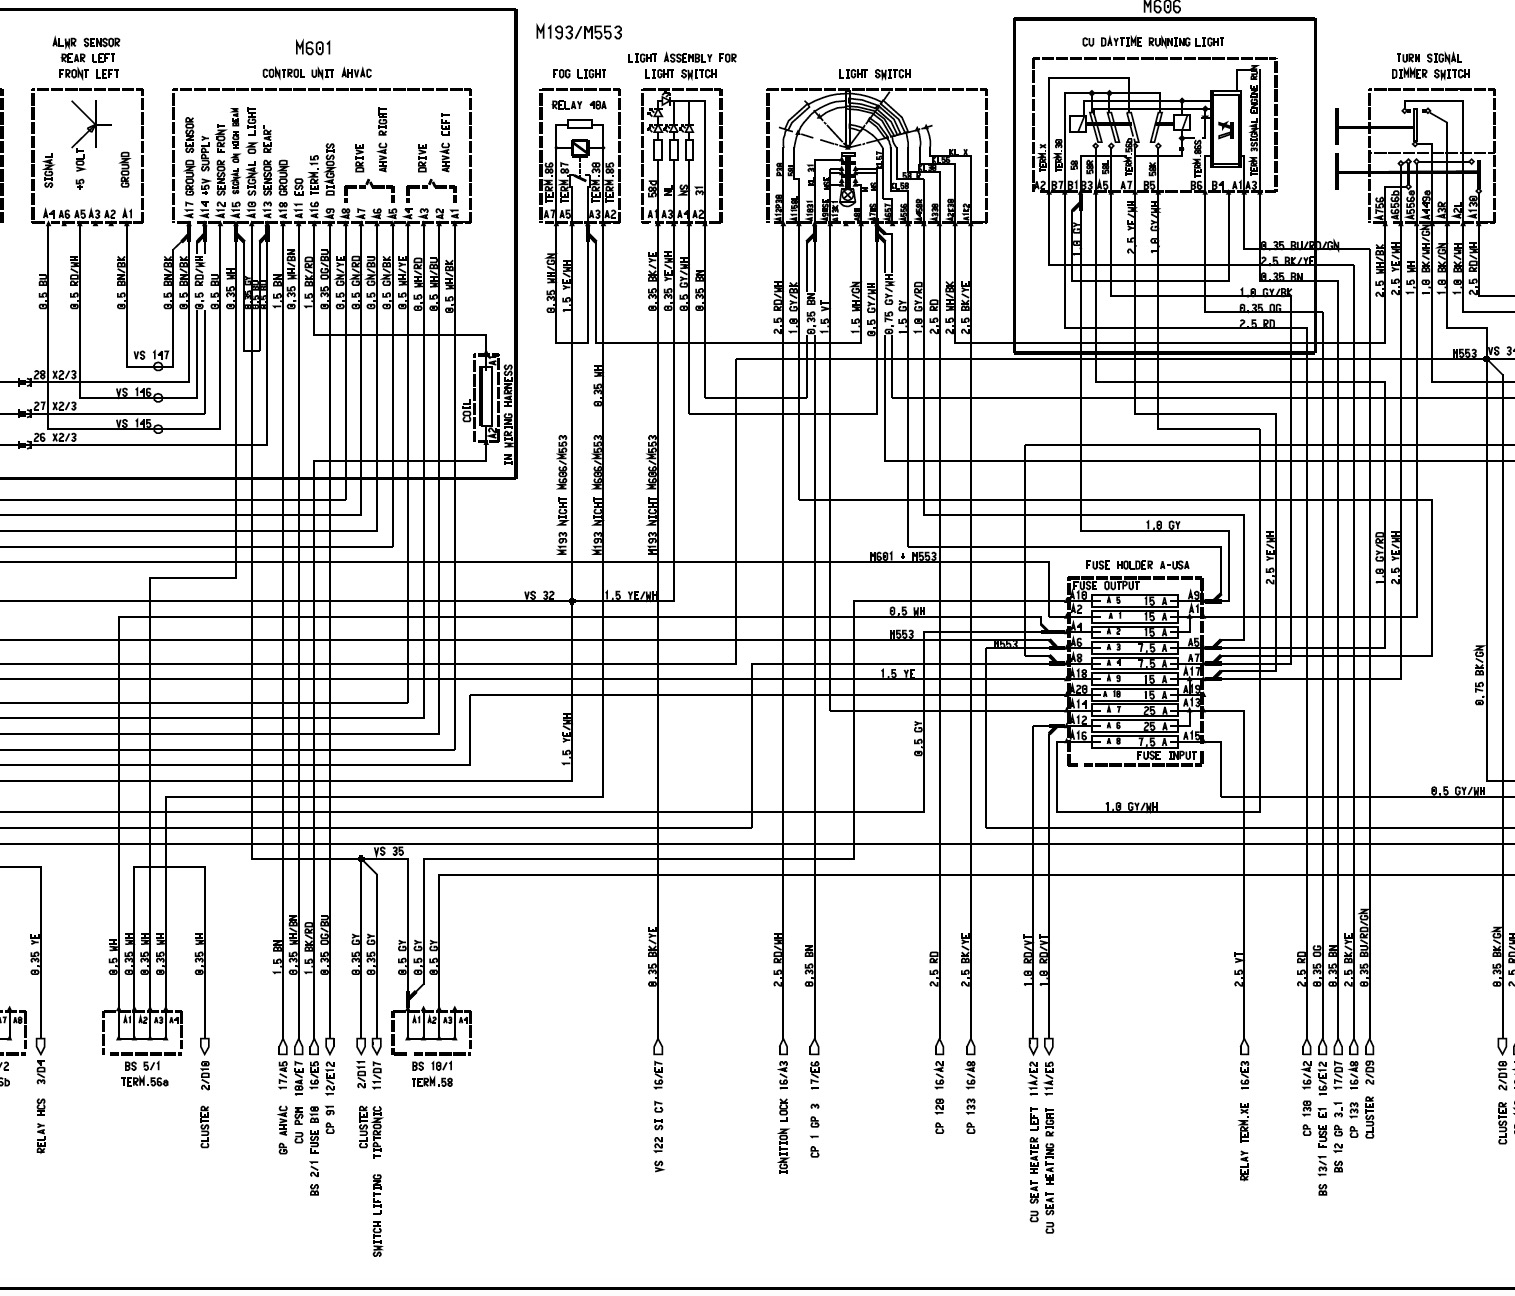 porsche 911 turbo wiring diagram john deere 250 skid steer 996 26 images